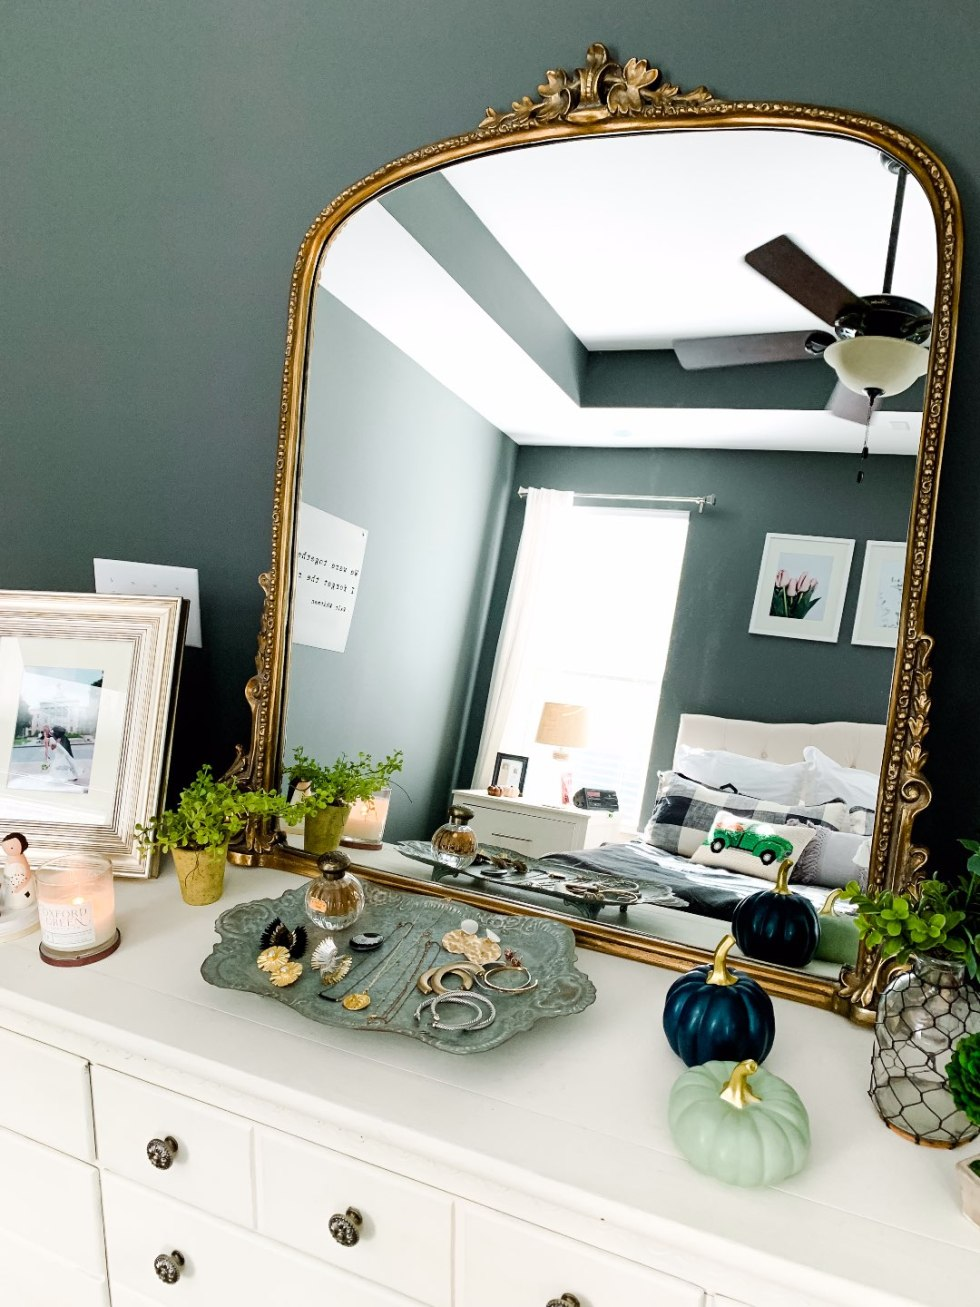 Our Fall Home Decor & Foyer Reveal - I'm Fixin' To - @mbg0112 | Cozy Fall Decor Ideas for your Home & Foyer by popular North Carolina life and style blog, I'm Fixin' To: image of a dresser with a Anthropologie Gleaming Primrose Mirror.